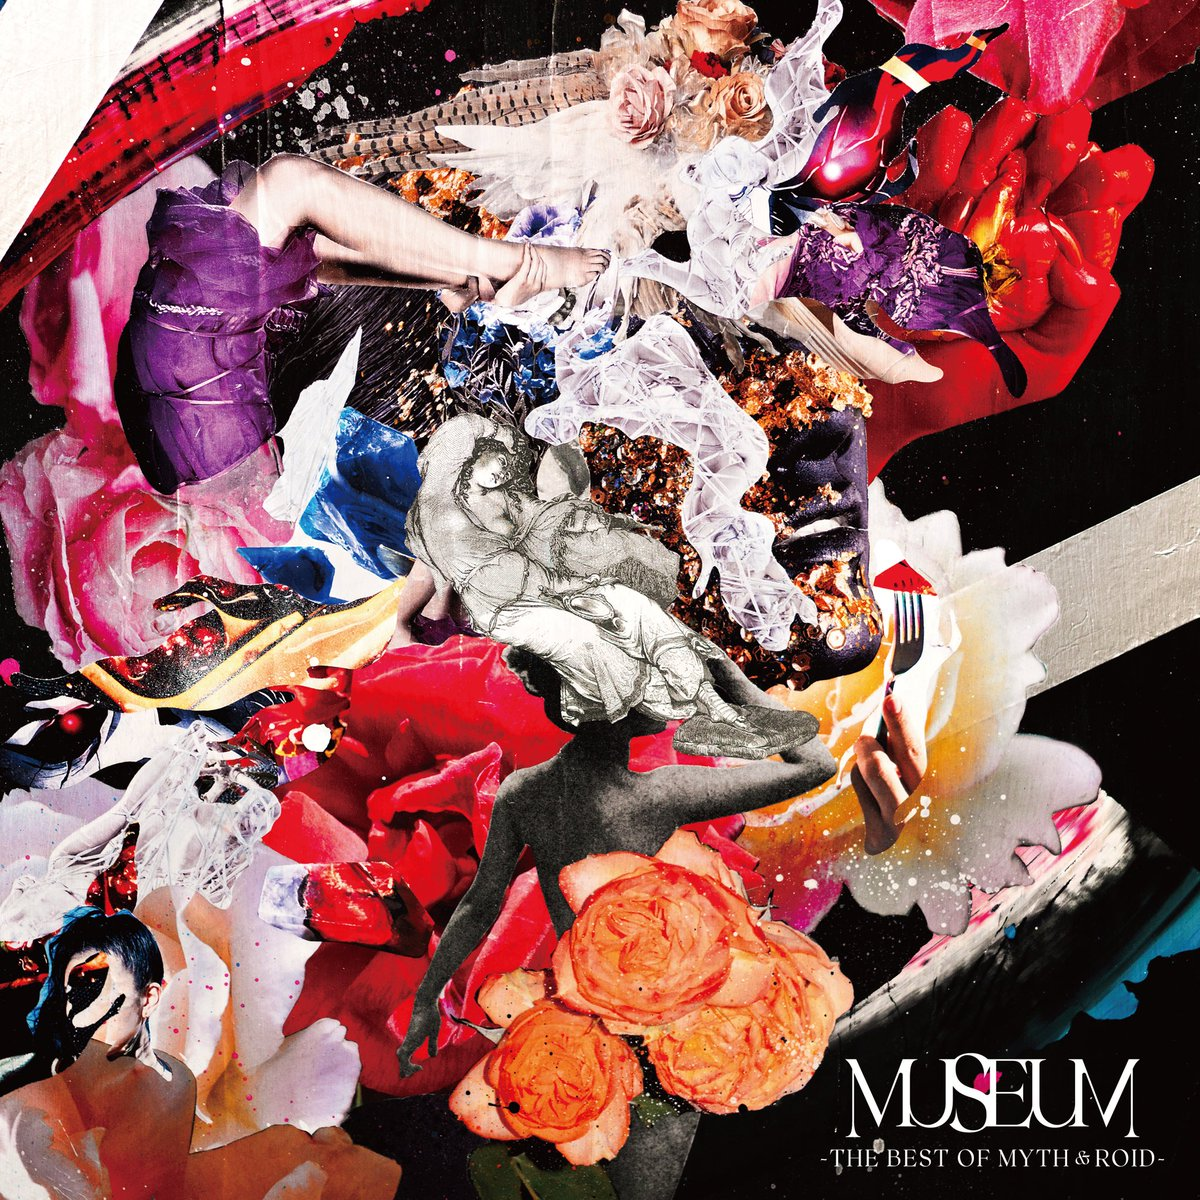 『MYTH & ROID - FOREVER LOST 歌詞』収録の『MUSEUM-THE BEST OF MYTH & ROID-』ジャケット